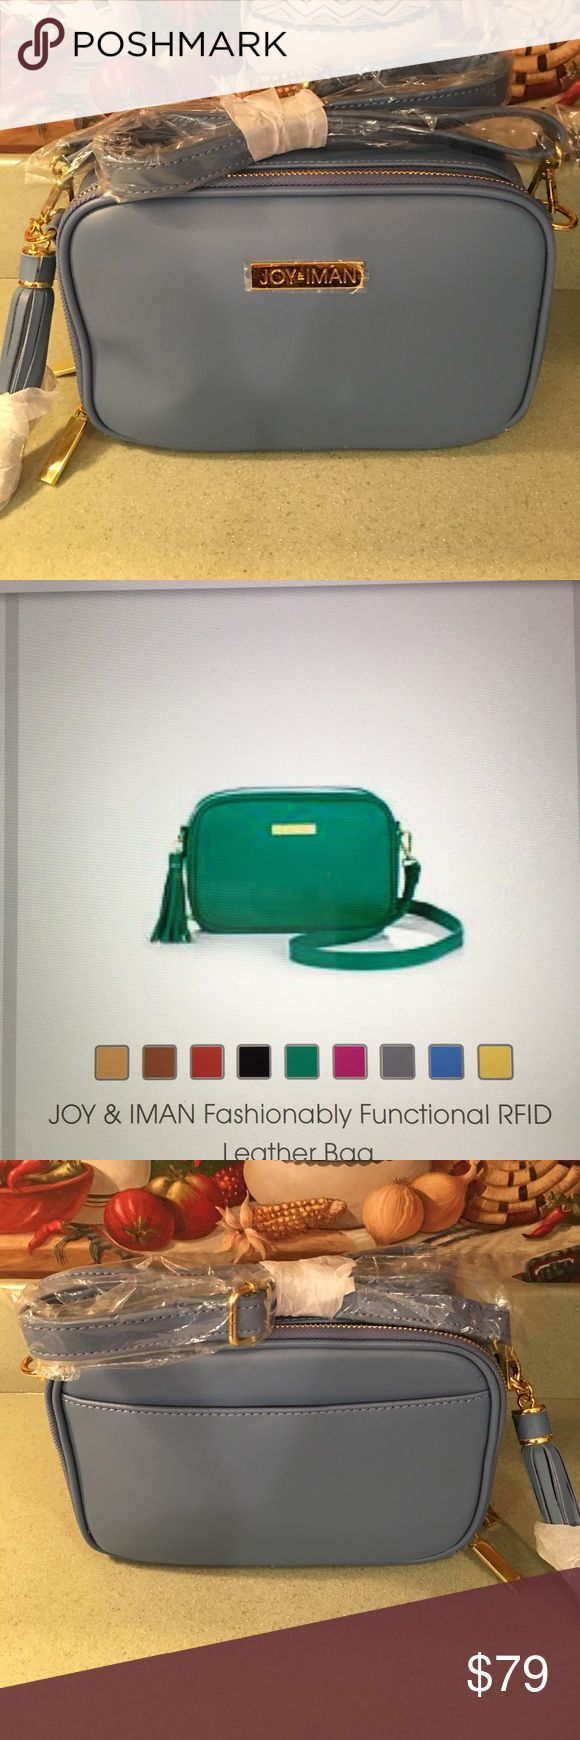 NWT JOY & IMAN LEATHER PURSE This is new with all the paper still on. It's a very pretty med blue color trimmed in gold. It is from HSN. Has 2 compartments and a pocket outside. Has a large leather tassel on side Strap can be adjusted to many lengths. Very pretty would be beautiful for spring. Can go on HSN to read more about it. It has built in RFID BLOCKING for your license and credit cards. Bags Shoulder Bags